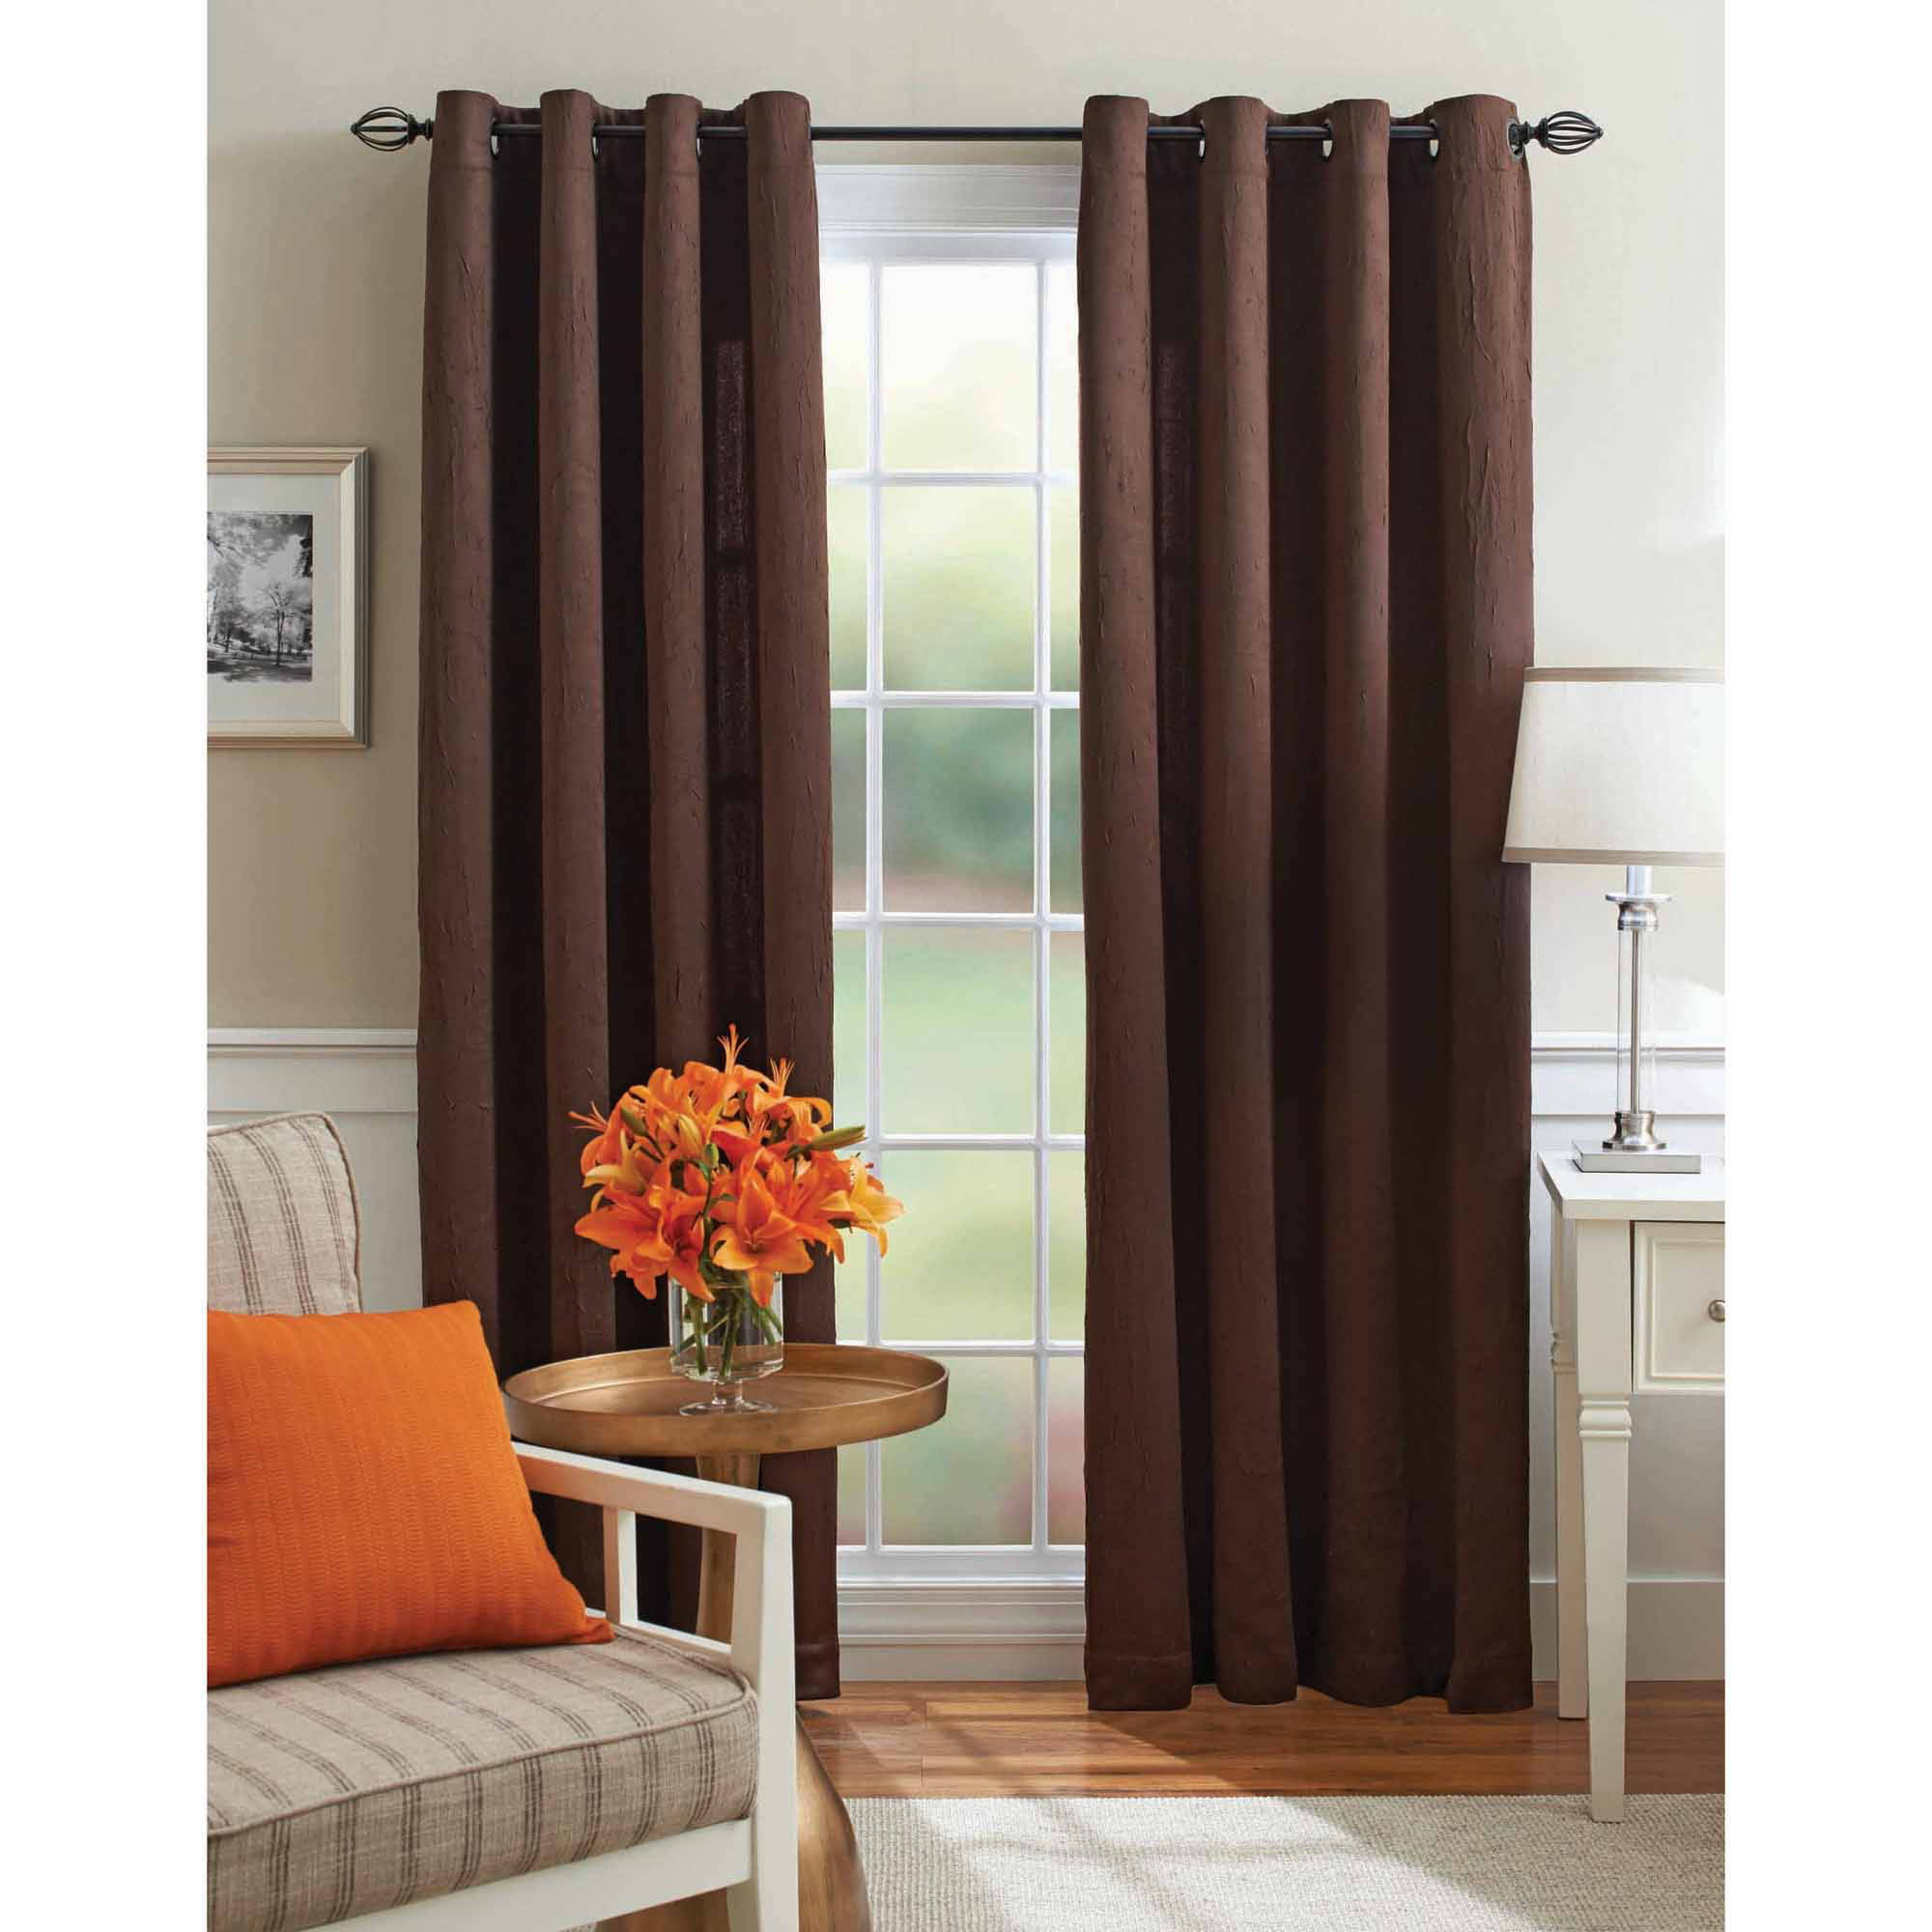 Better Homes And Gardens Embroidered Sheer Curtain Panel   Walmart.com Part 56